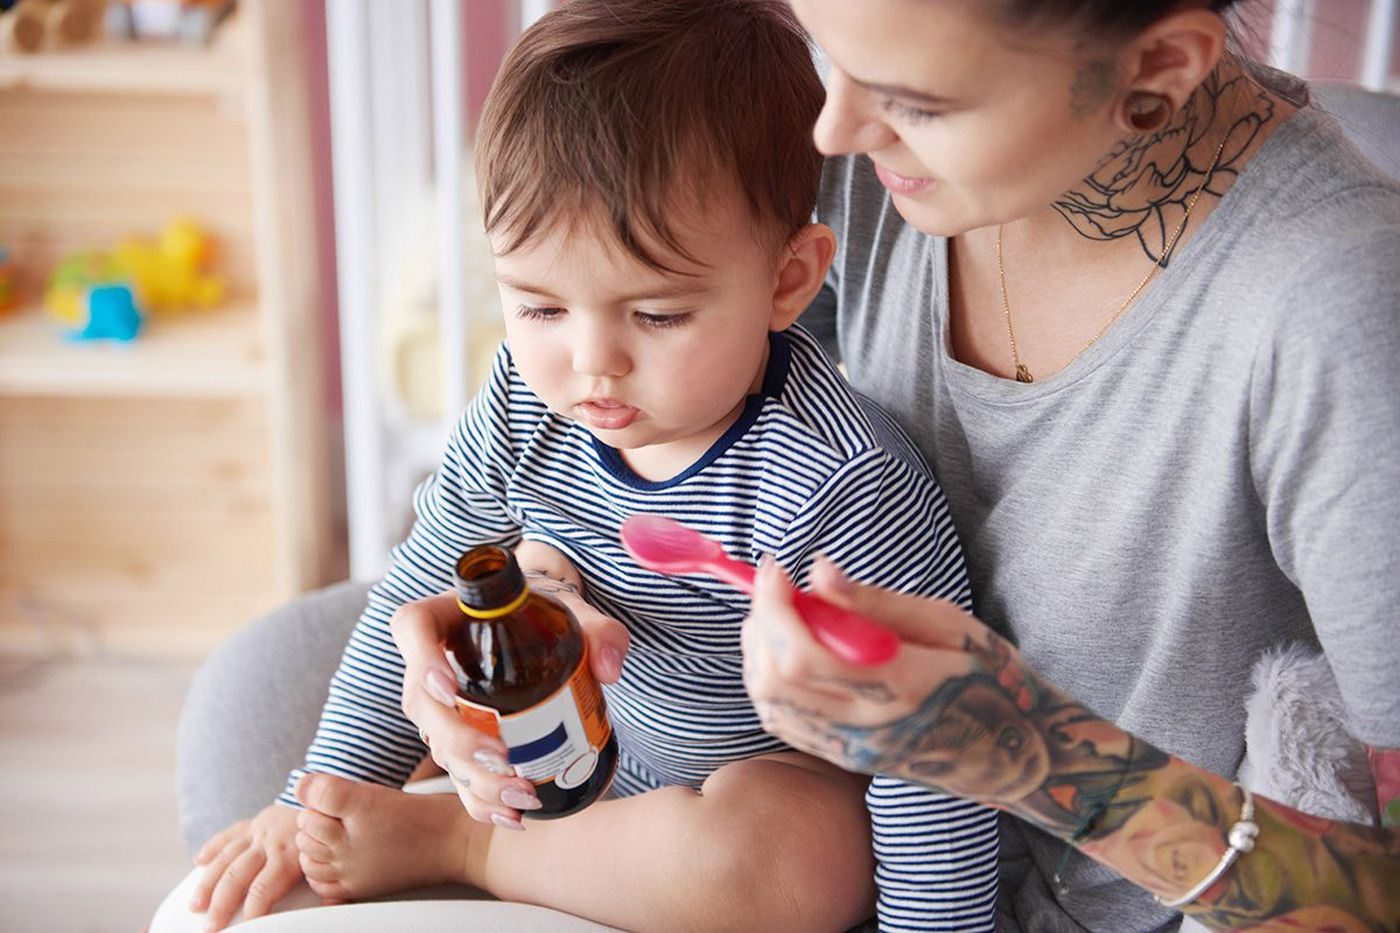 Why codeine doesn't belong in children's medications